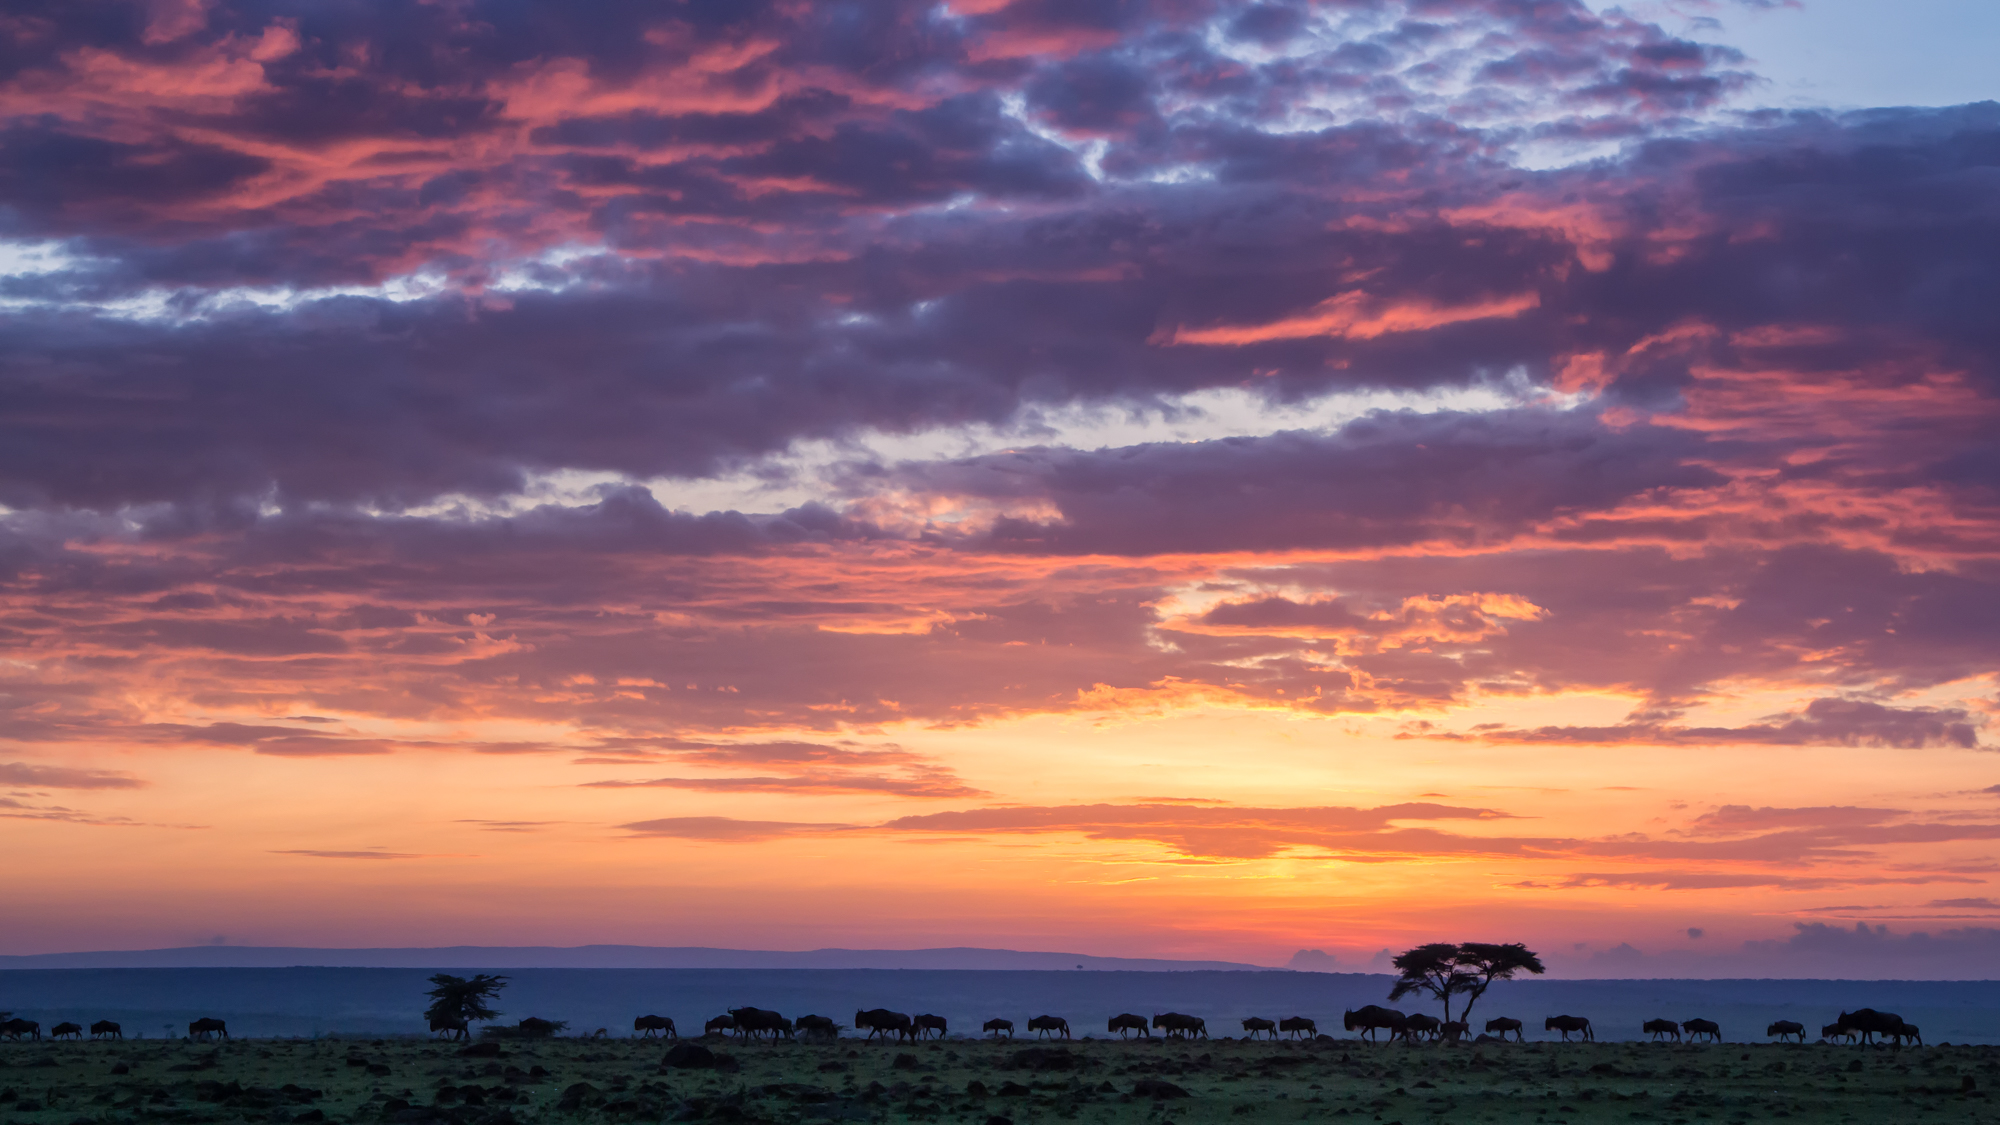 Wildebeest walking across a typical dawn scene in the Maasai Mara